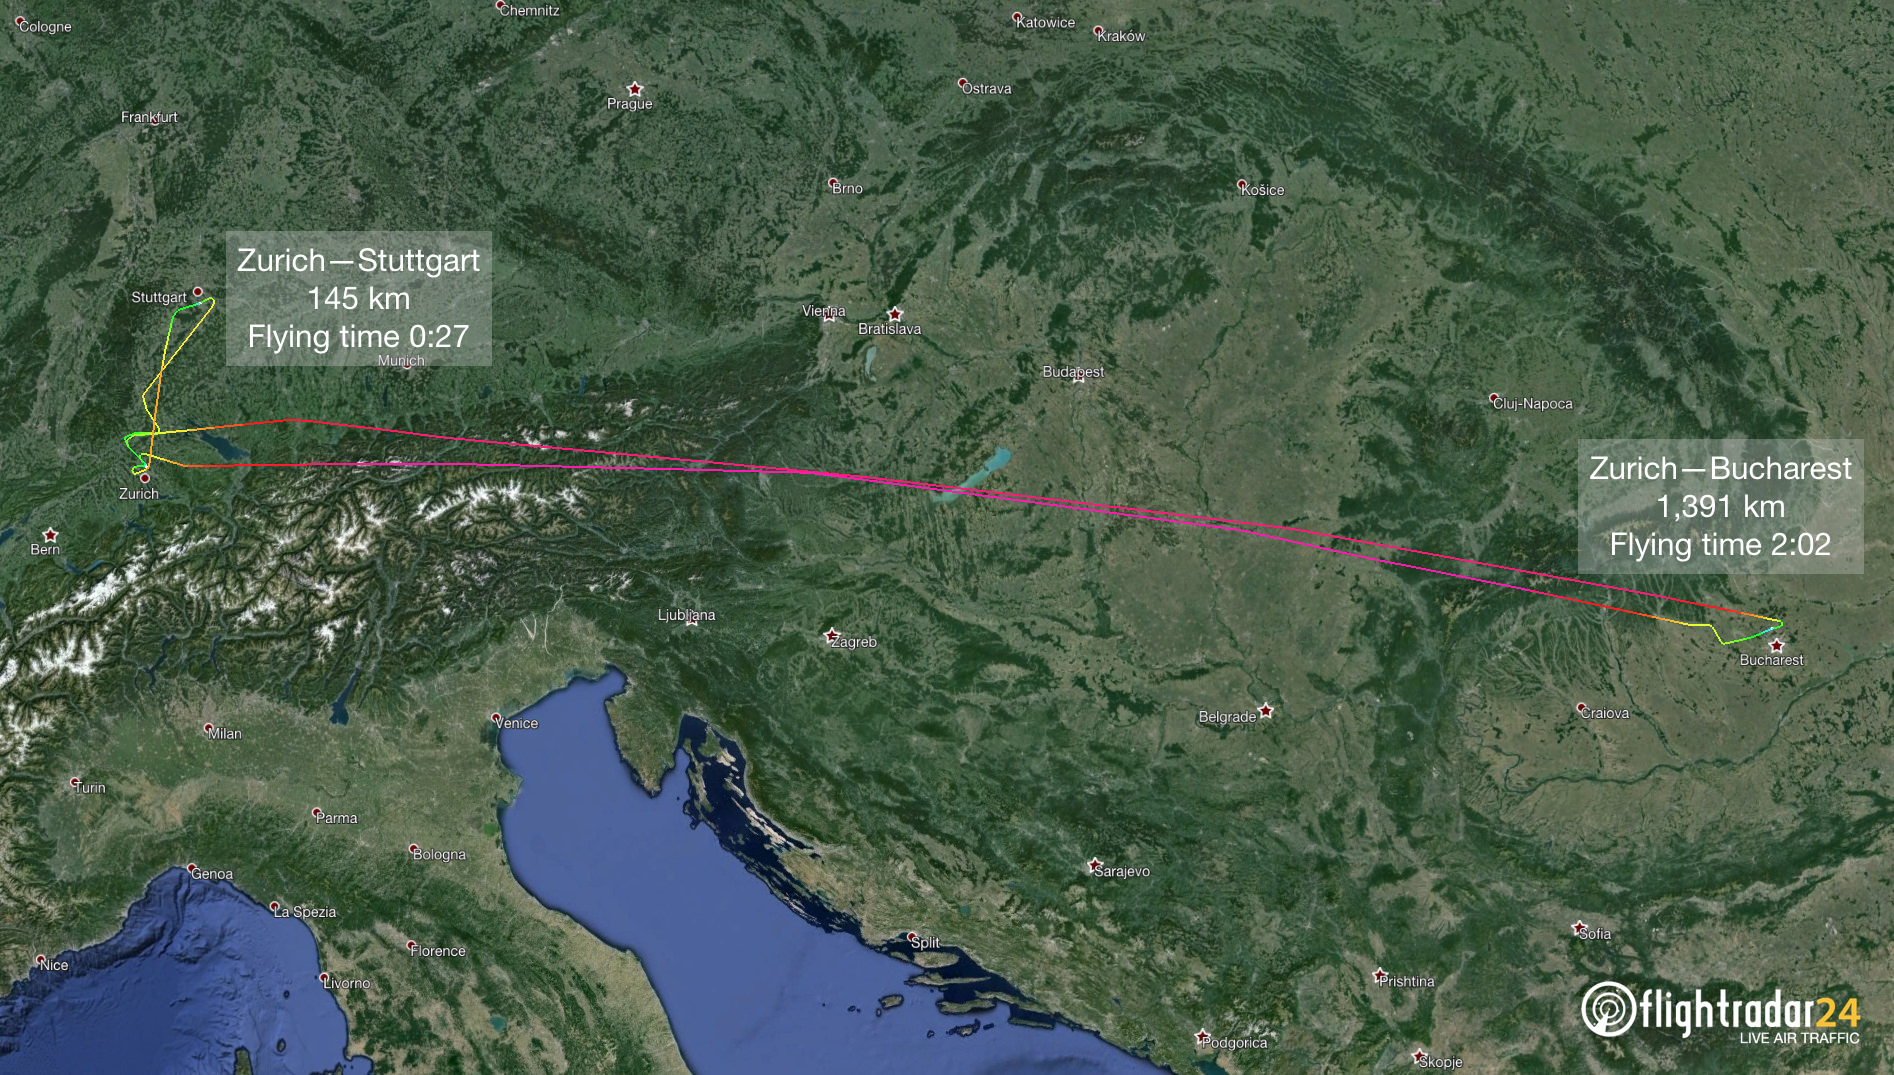 The shortest and longest proving flights to Stuttgart and Bucharest.